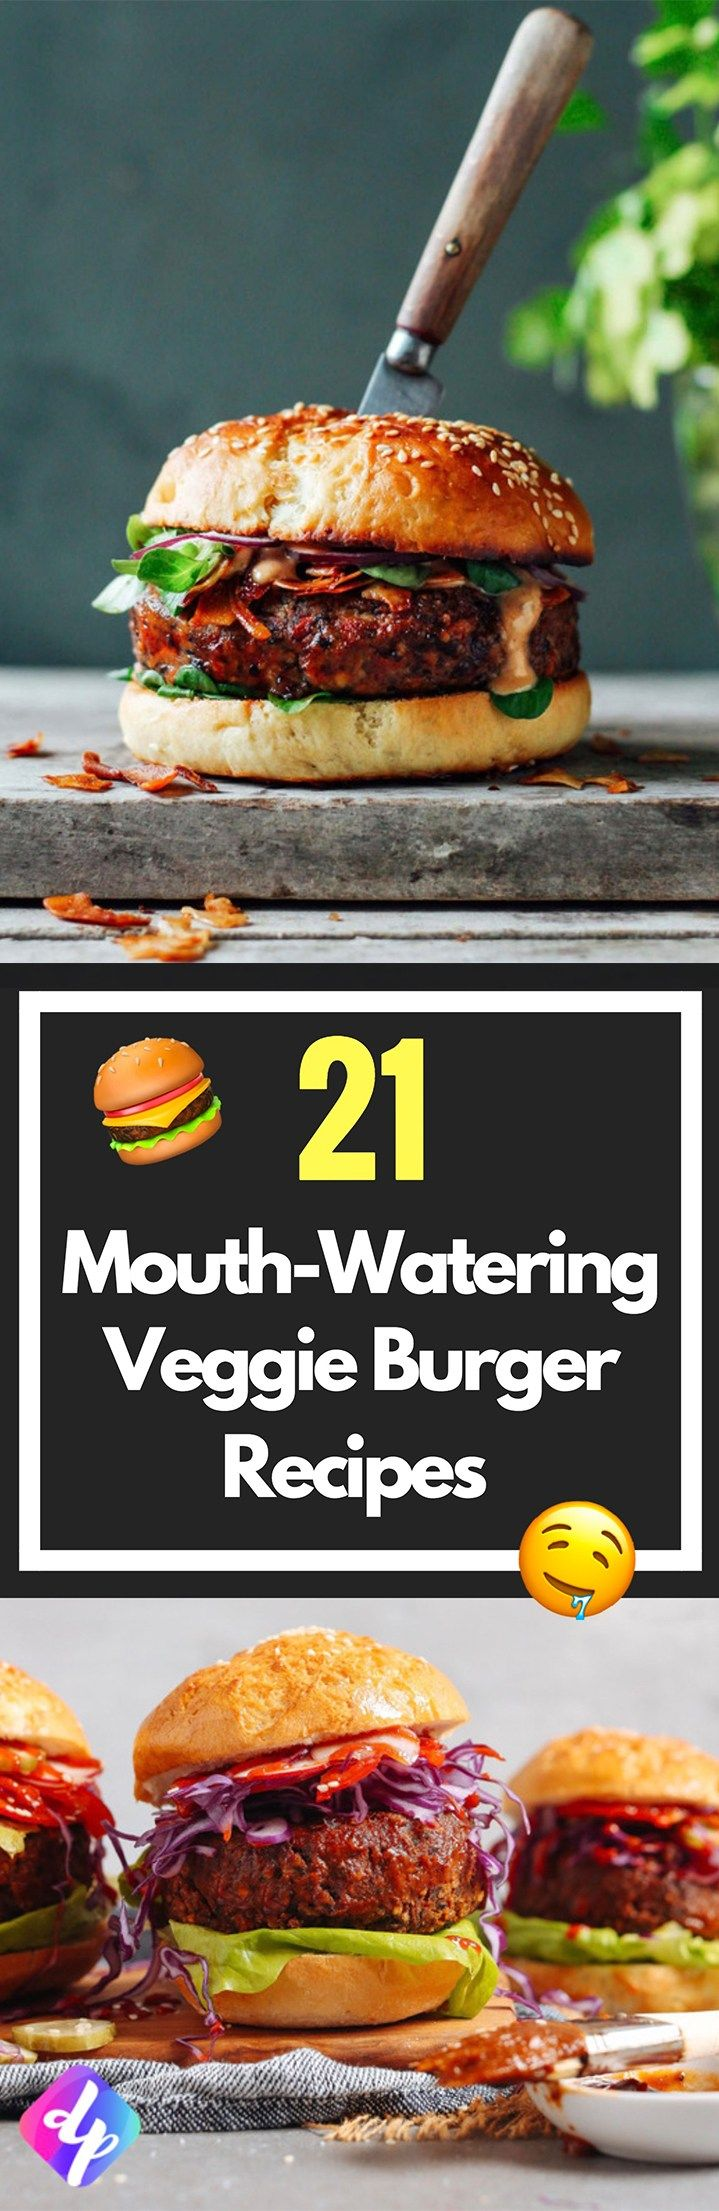 21 Mouth-Watering Veggie Burger Recipes Even Meat Eaters Will Love!